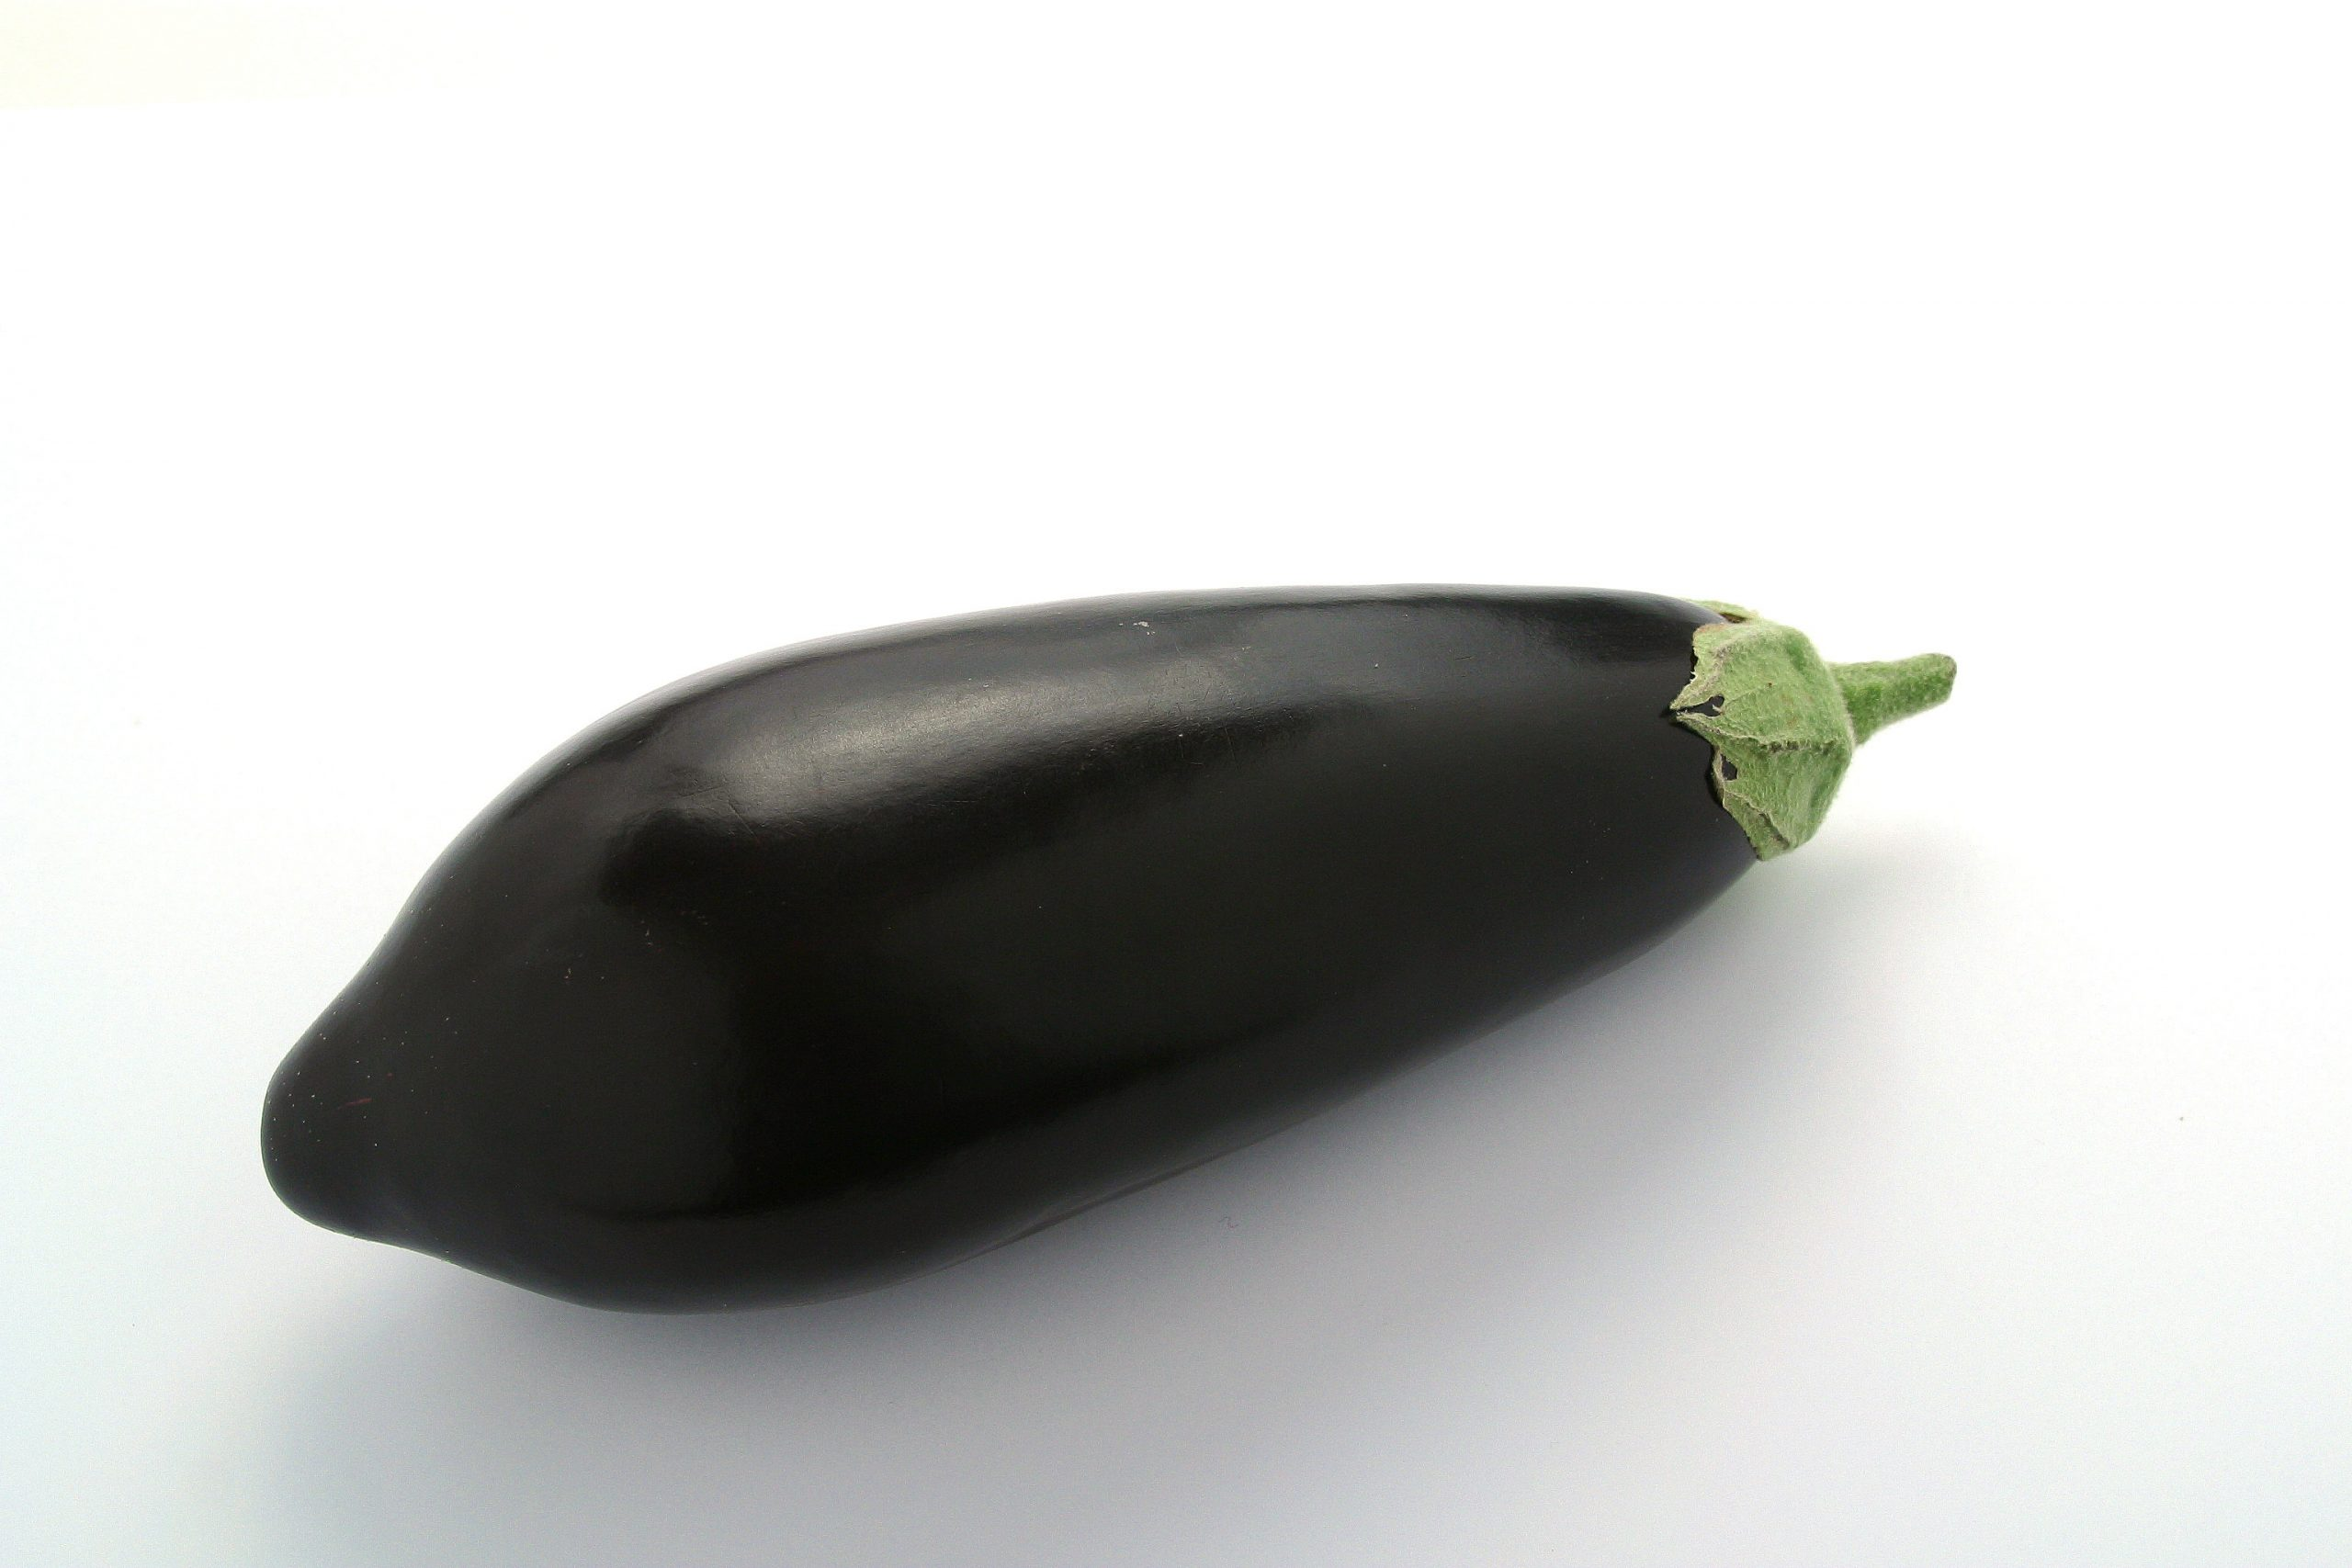 A new standard for aubergines has been forwarded for final adoption by the Codex Alimentarius Commission by the Codex Committee on Fresh Fruits and Vegetables.